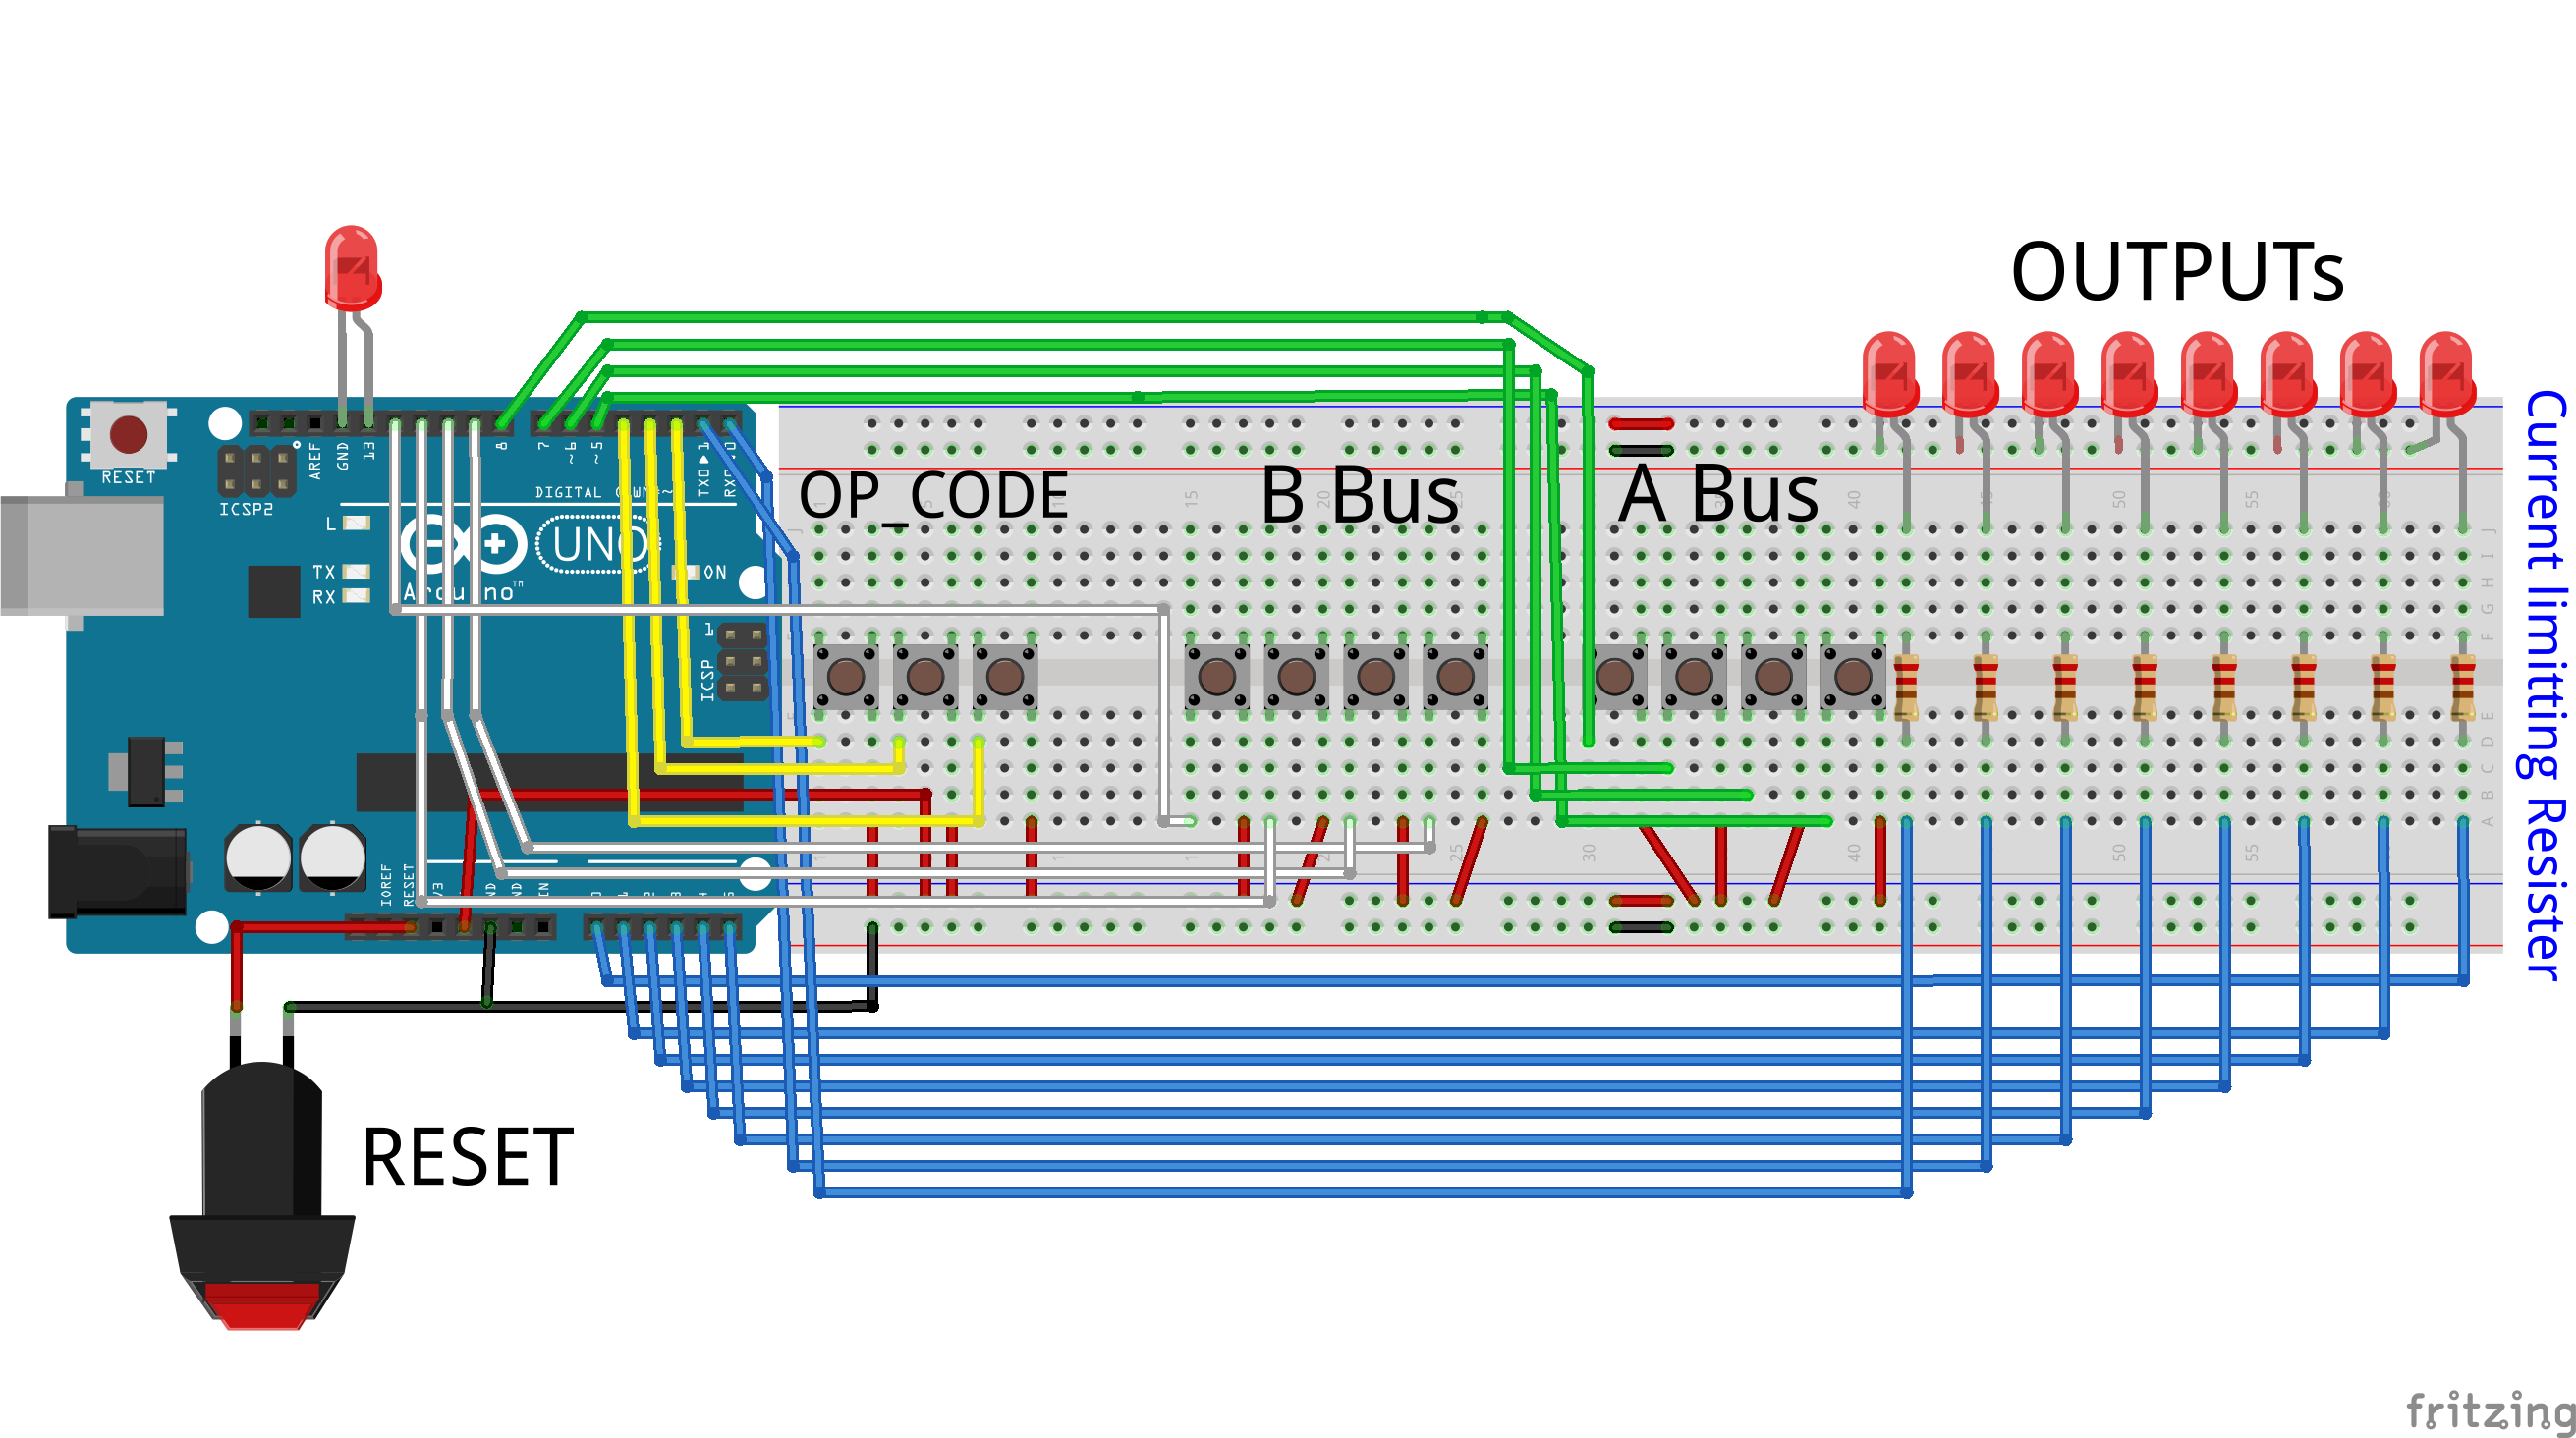 Picture of Circuits and Schematics.